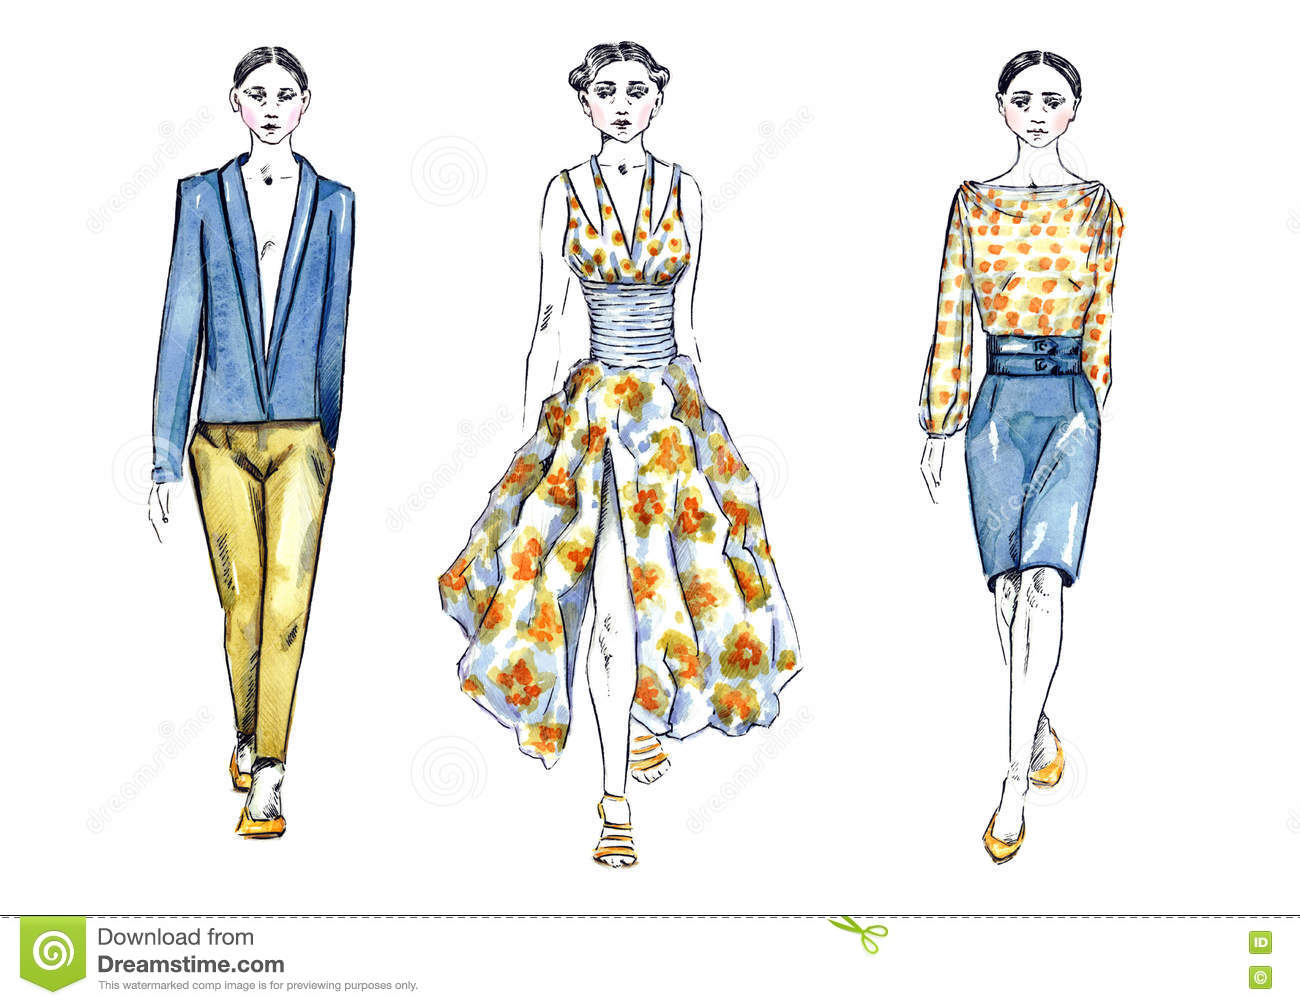 Watercolor Illustration Models in Fashion Show